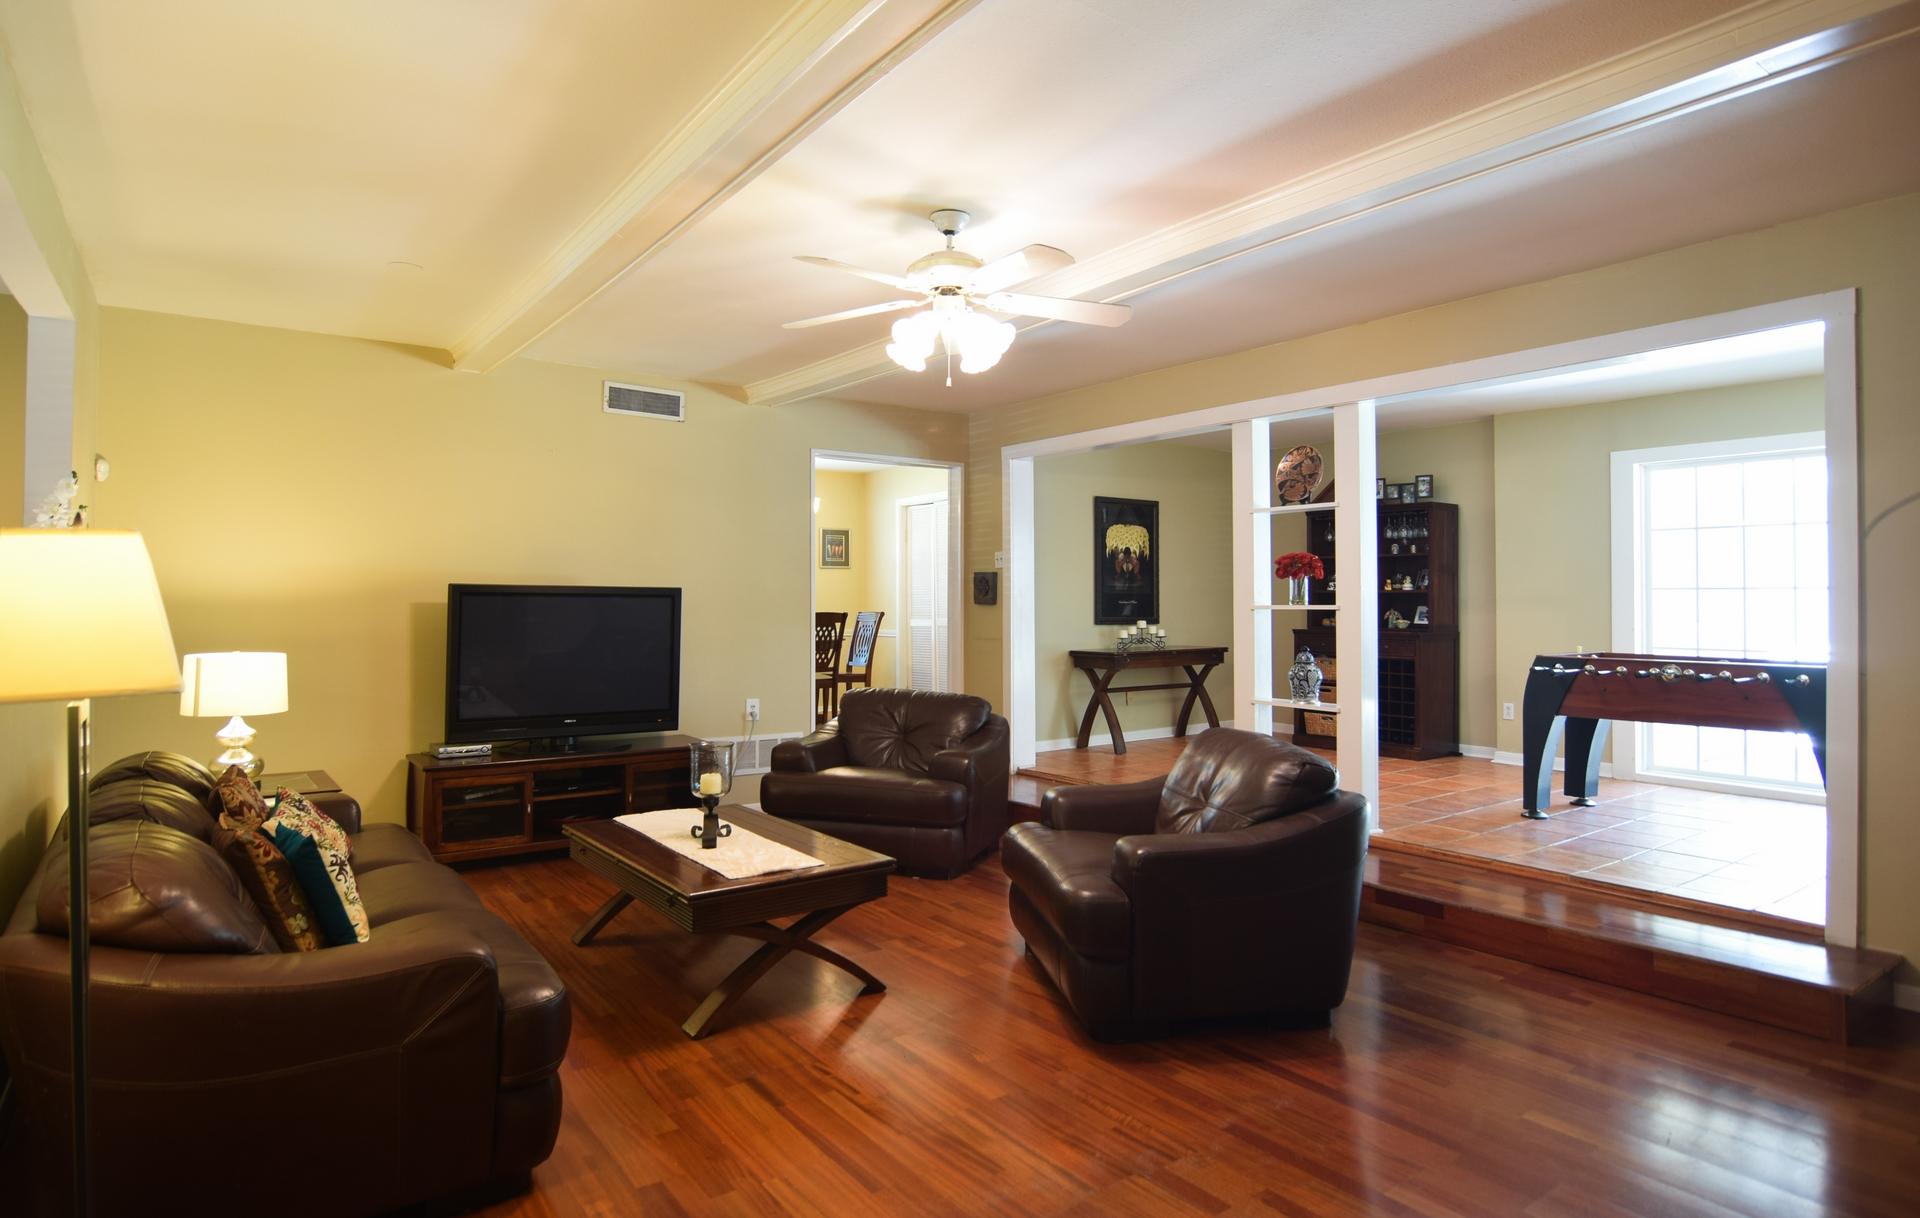 Family Room 10020 Harwich Dallas TX 75229.jpg